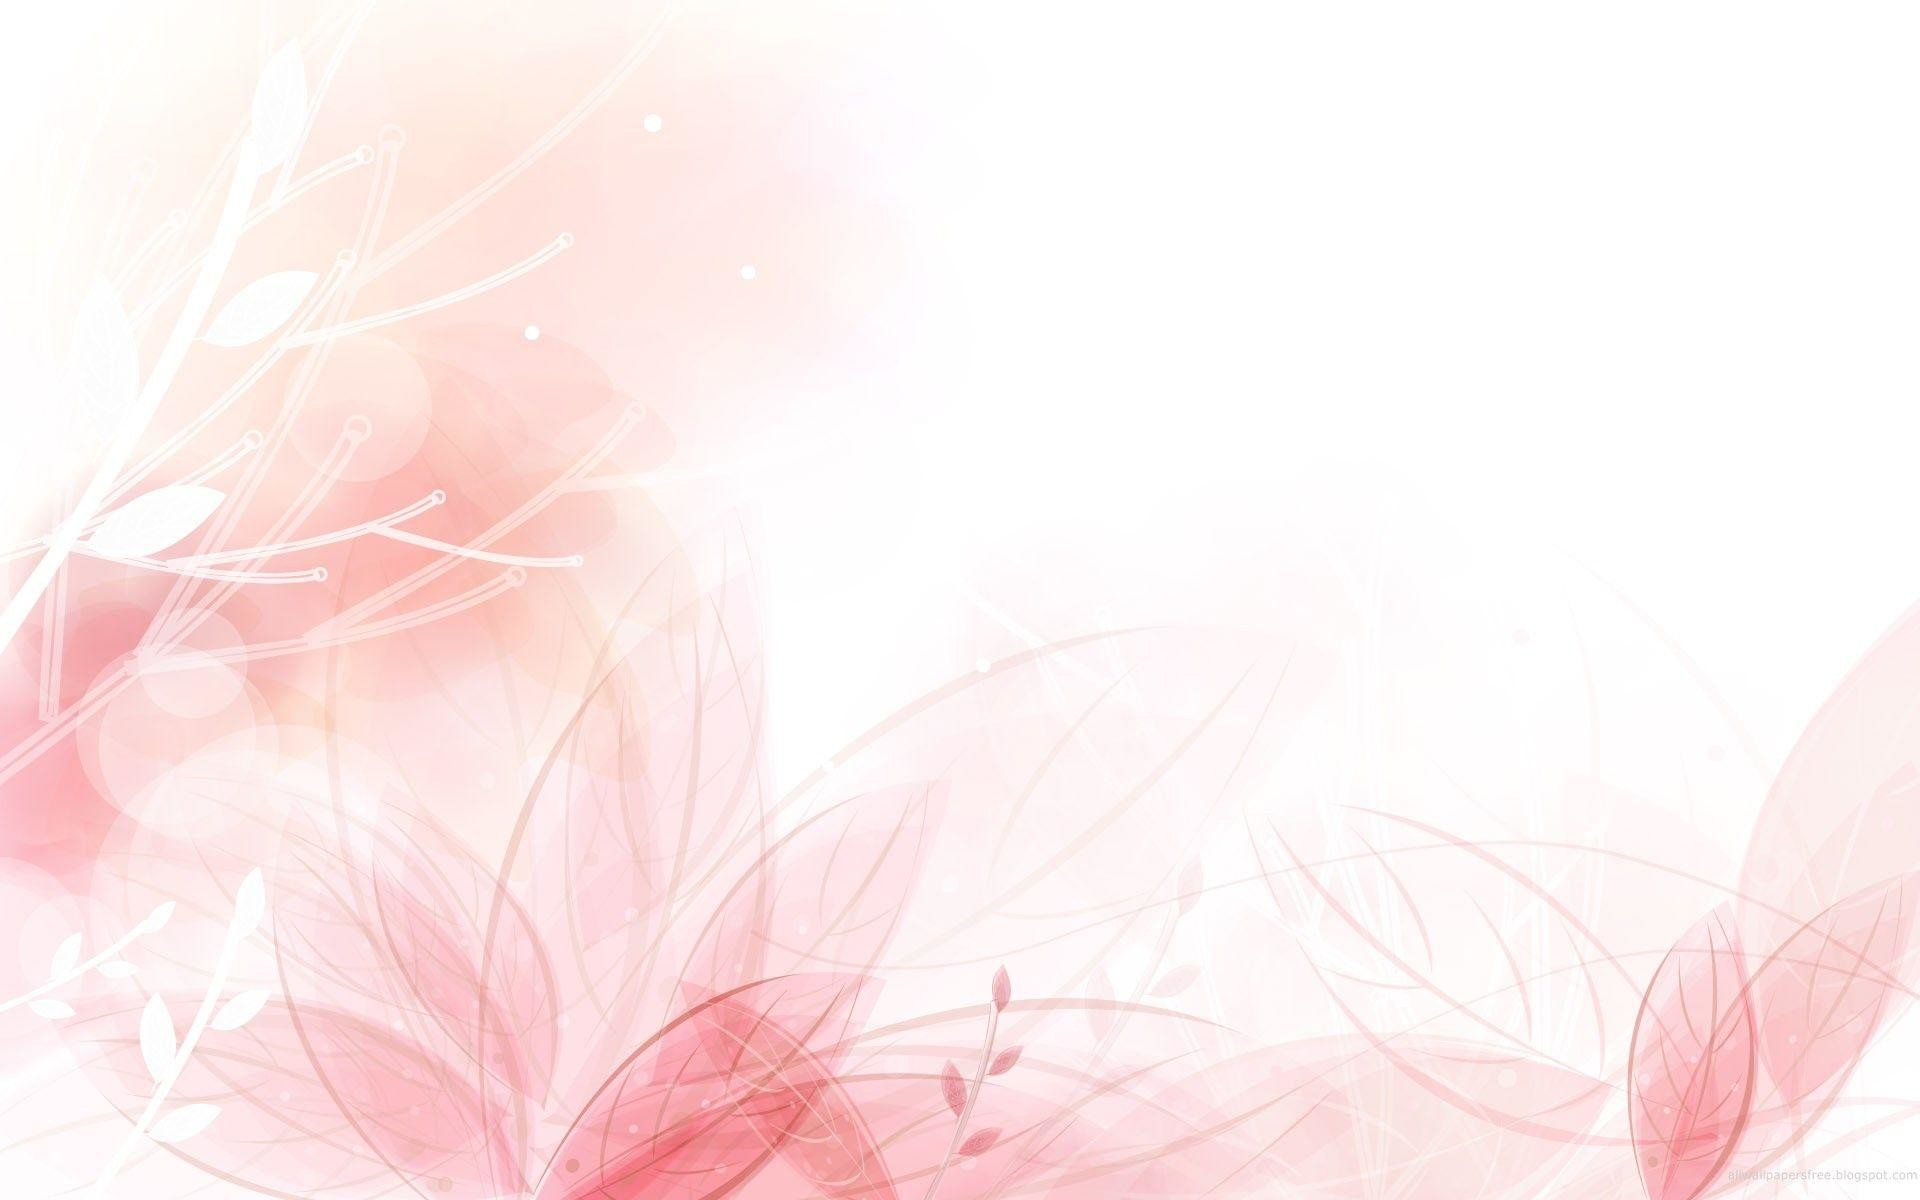 Cute Light Pink Backgrounds Images & Pictures – Becuo